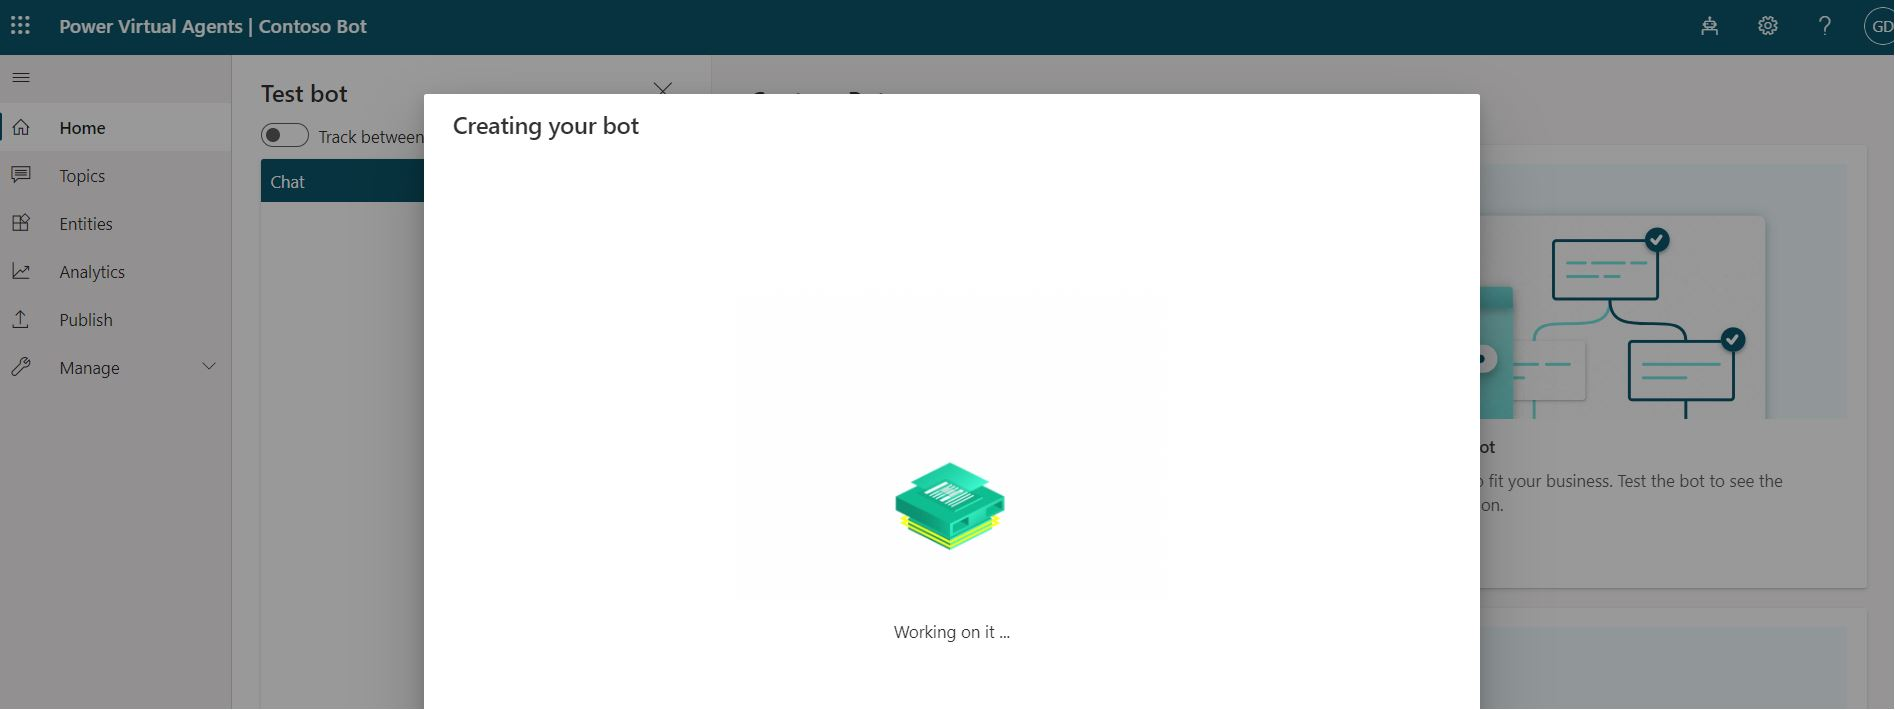 Creating chatbot in process status